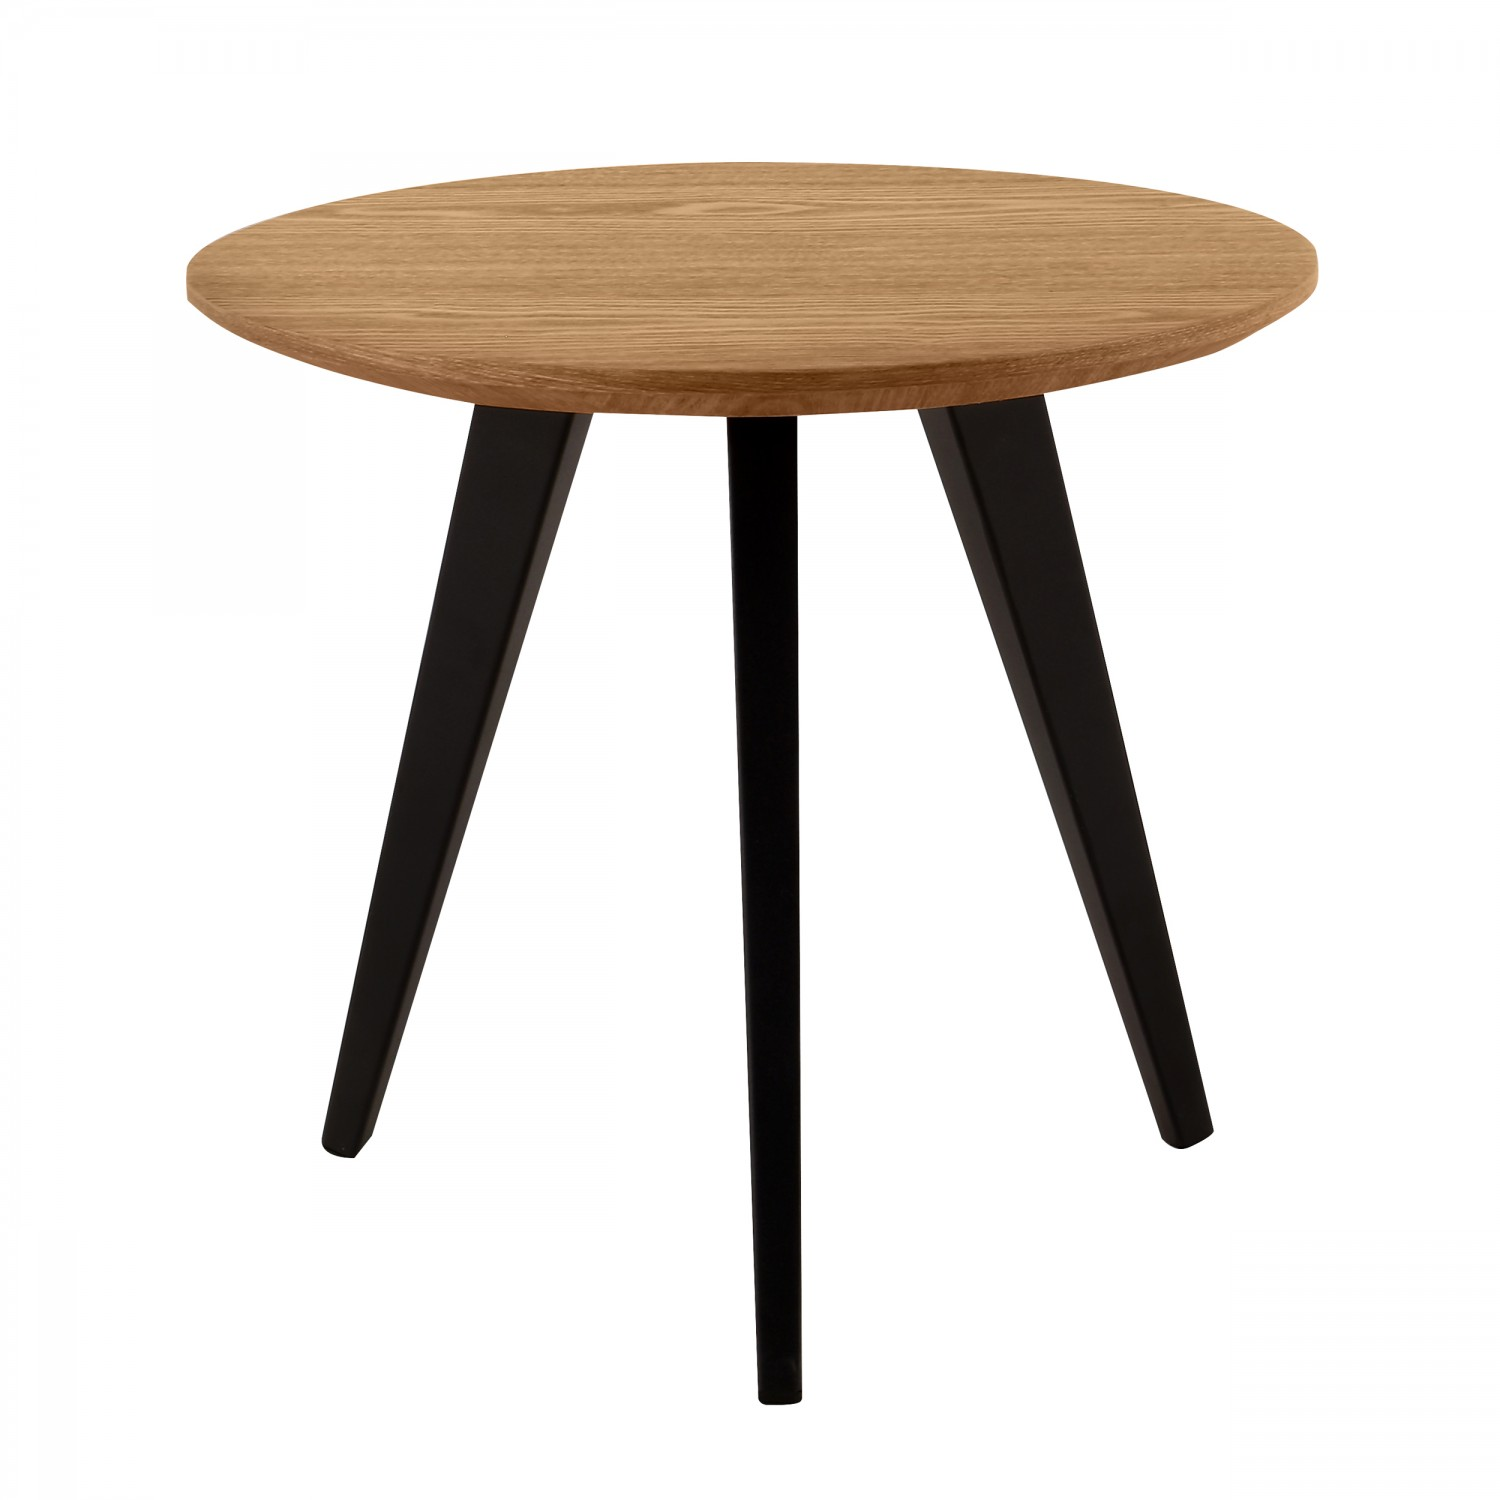 table basse ronde 50 cm bois clair koya design. Black Bedroom Furniture Sets. Home Design Ideas